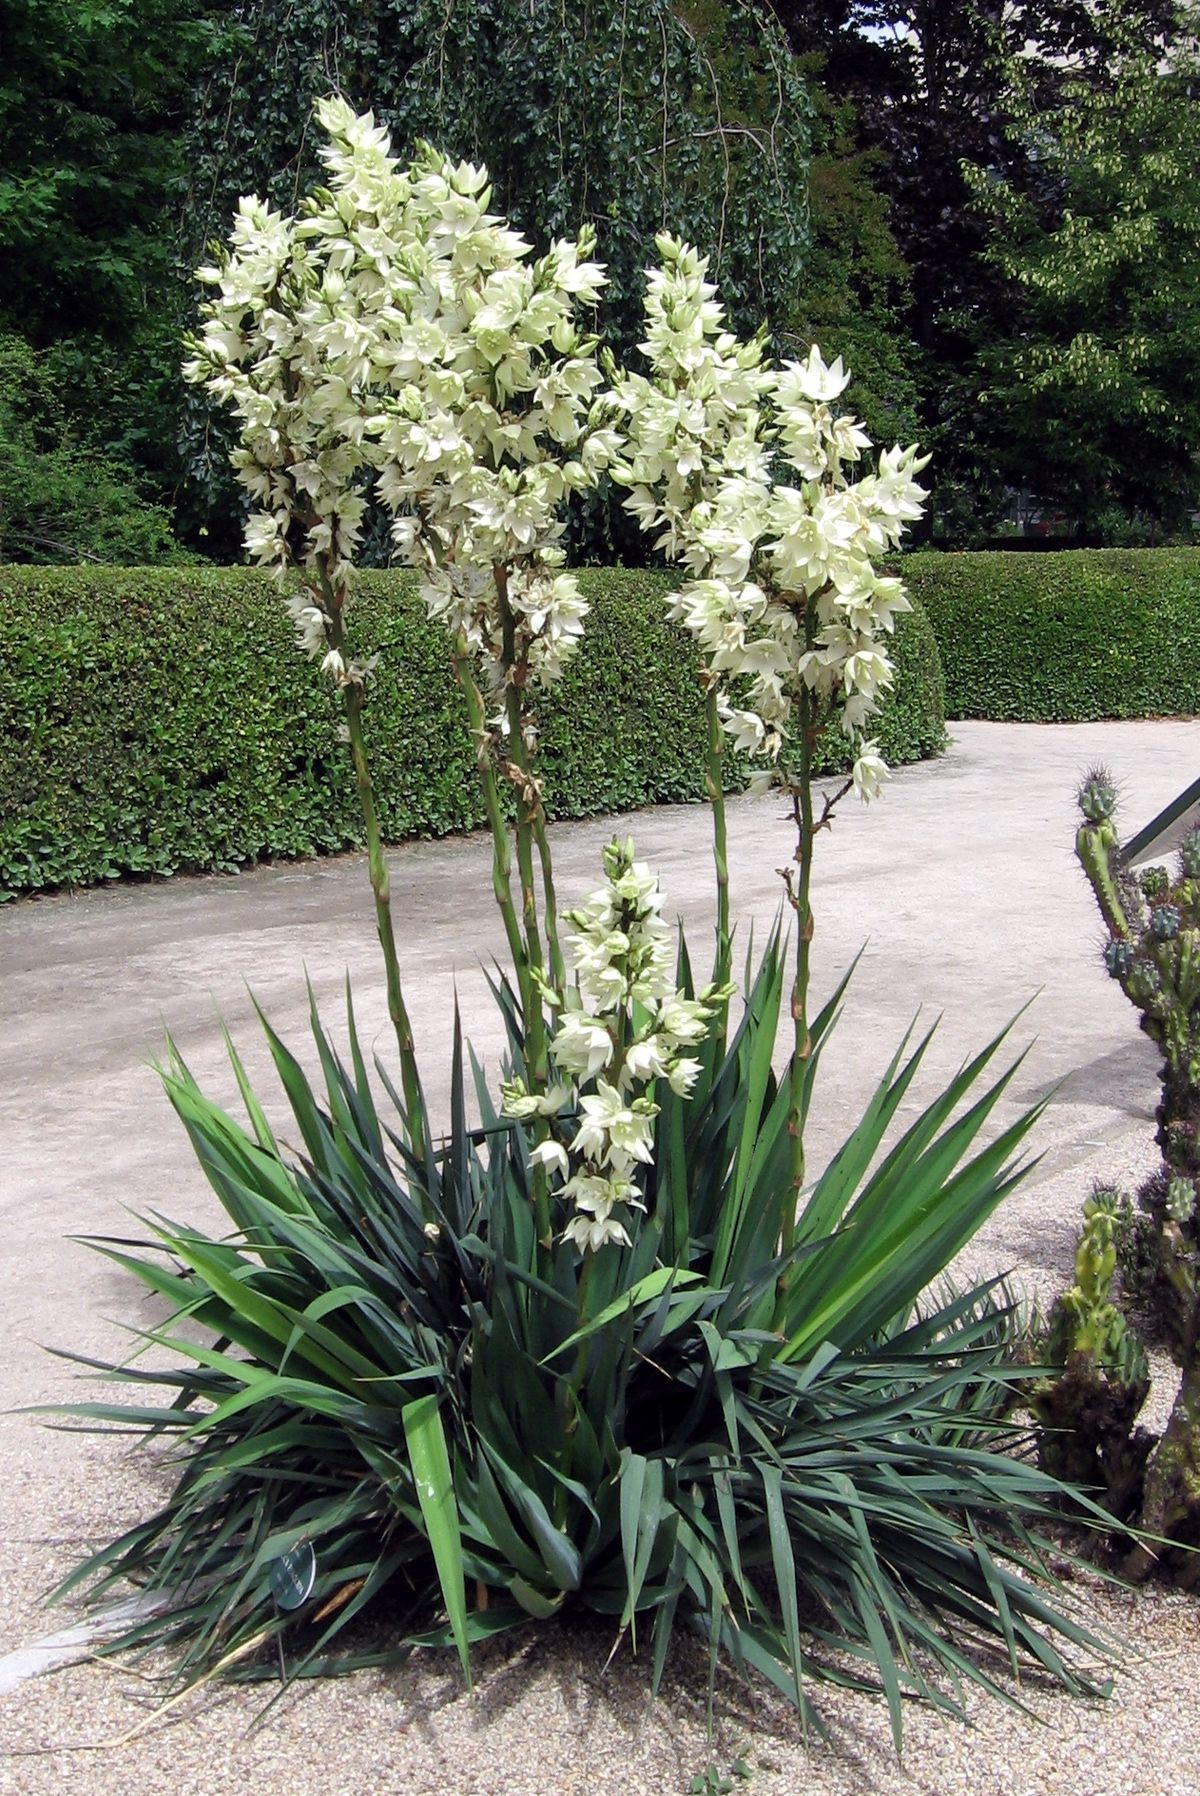 Yucca Plant in a driveway and manicured lawn